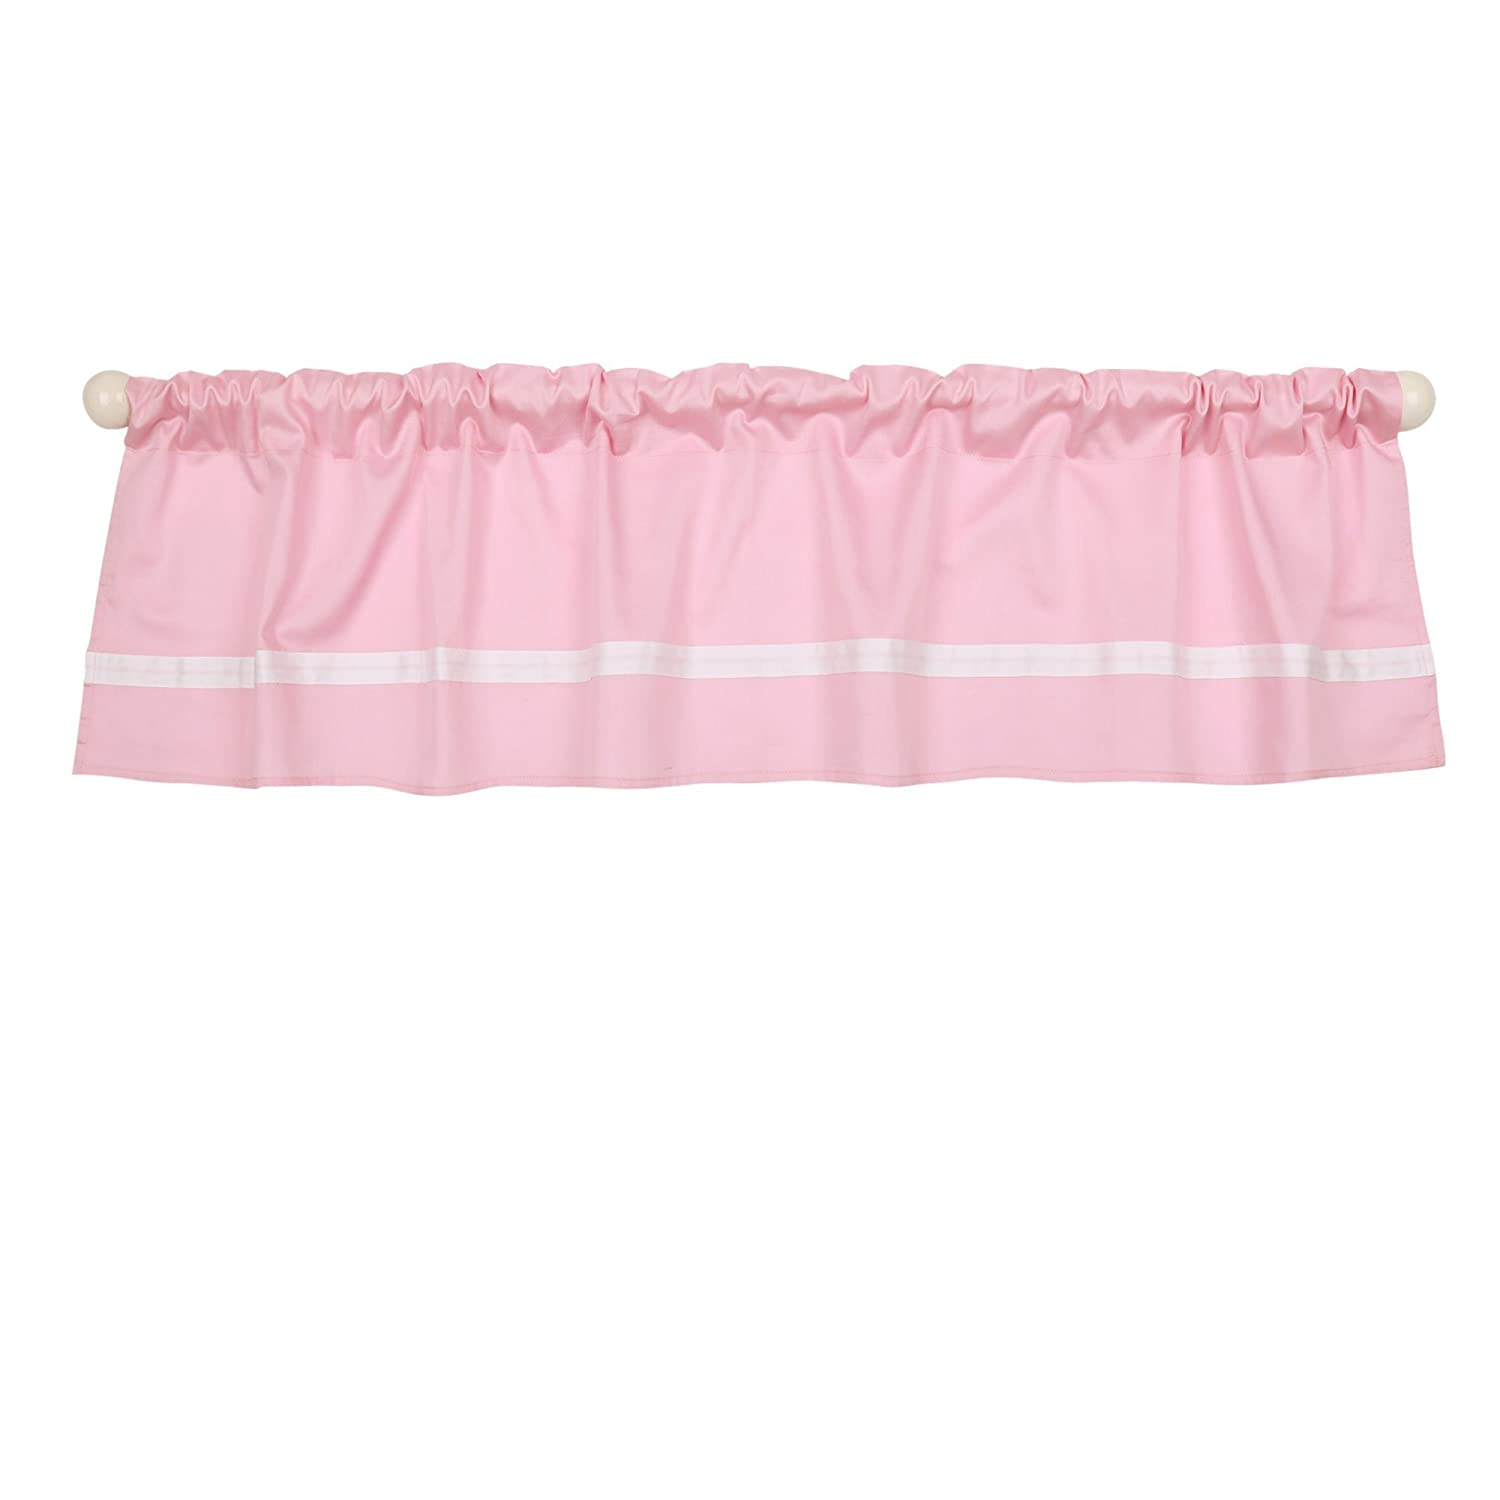 Pink Tailored Window Valance by The Peanut Shell - 100% Cotton Sateen Farallon Brands WVSDPKWH